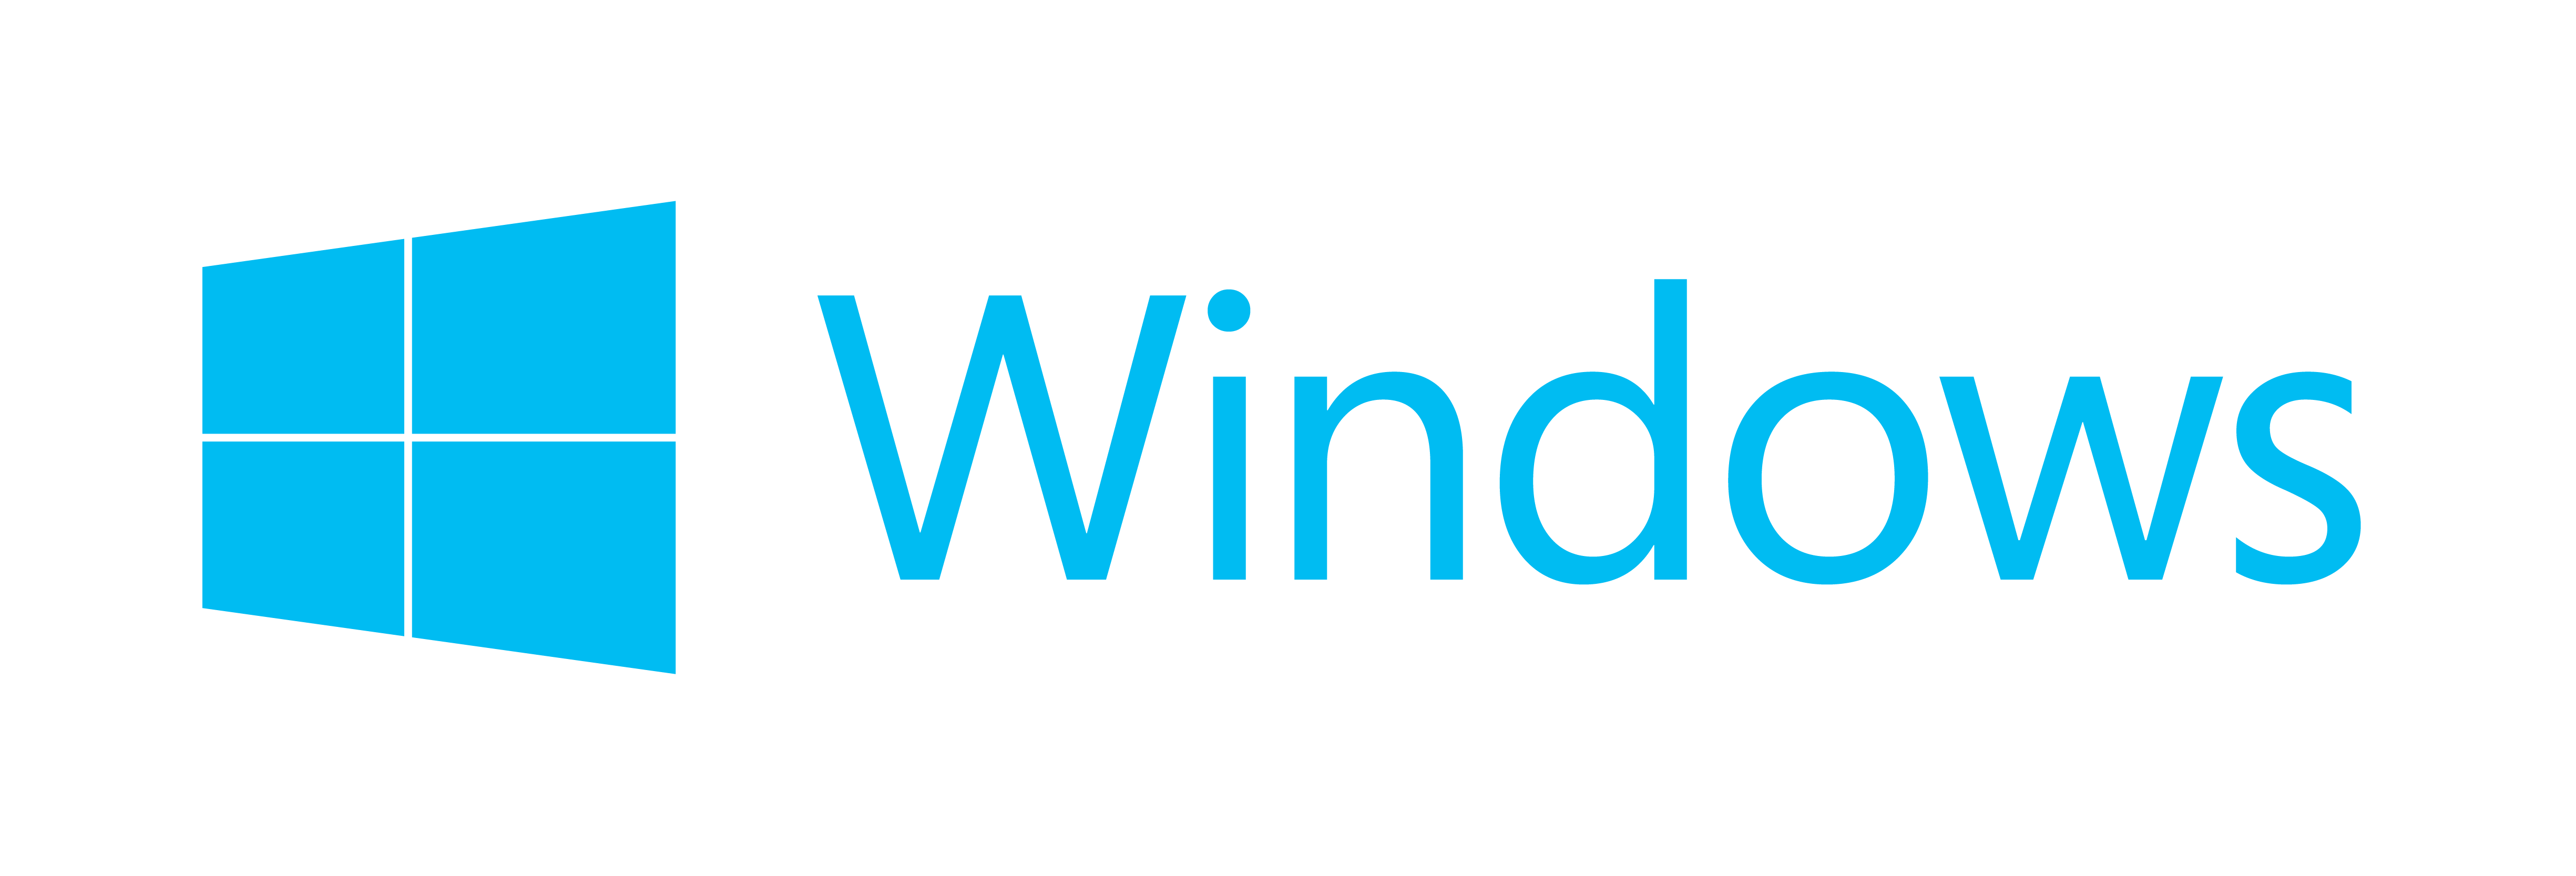 Download Microsoft Windows PNG images transparent gallery. Advertisement - Microsoft Windows PNG